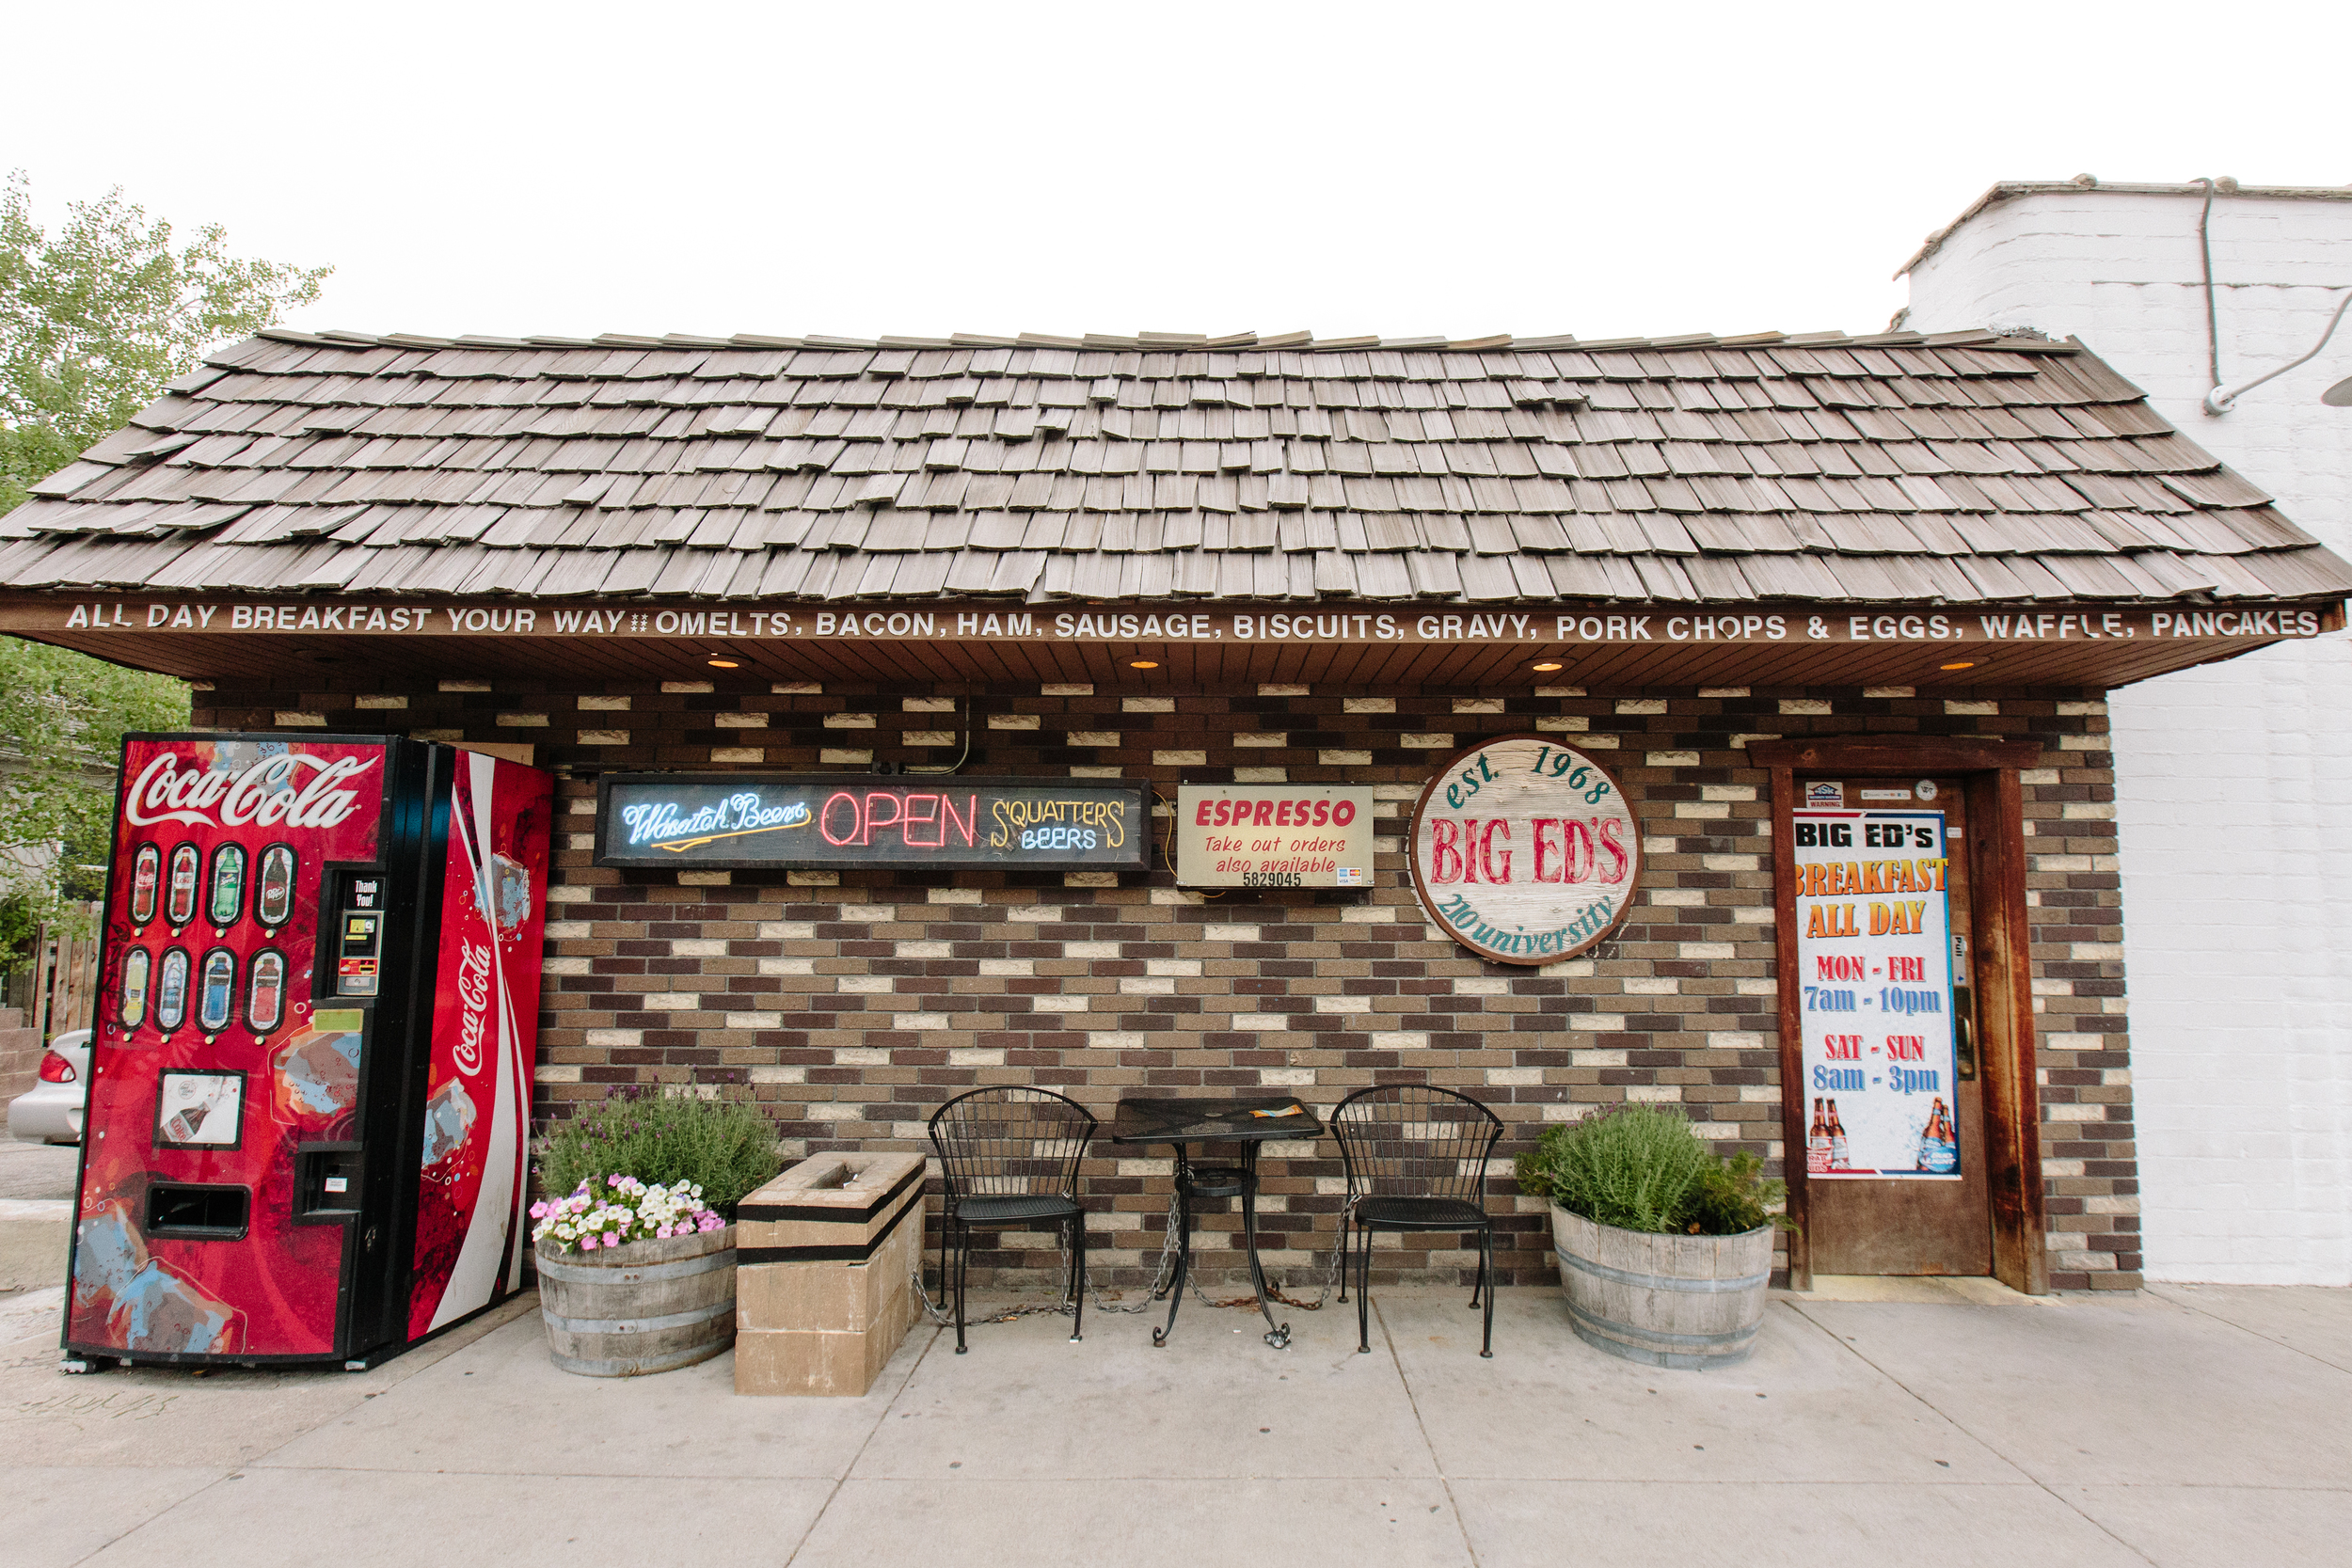 For diner breakfasts or Friday night old-time music, head up the hill to Big Ed's, another neighborhood classic.